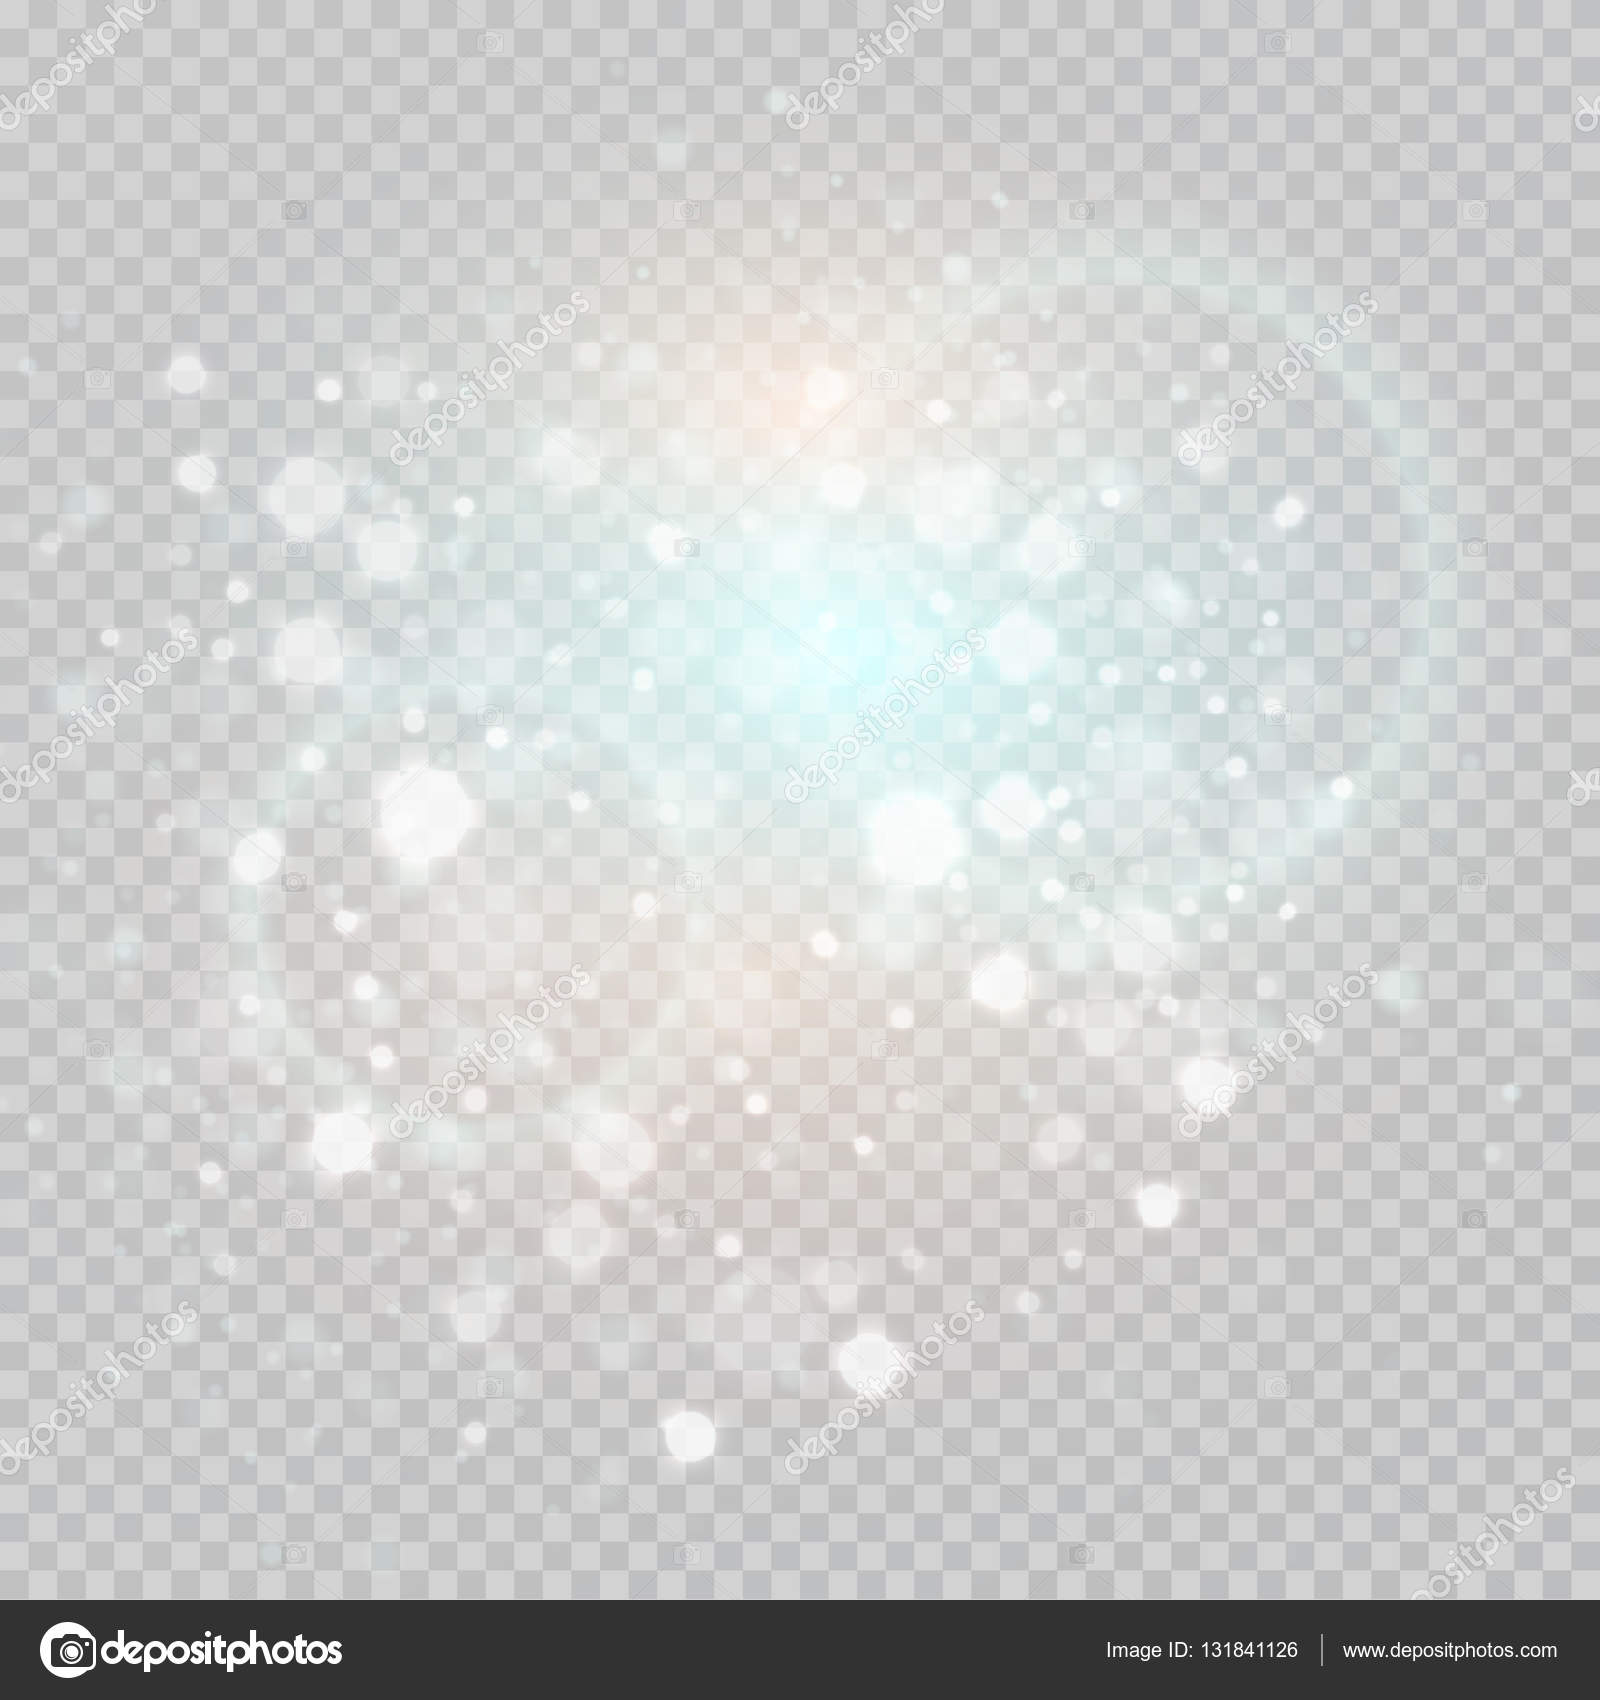 Background image transparency - Bokeh Light Gray Sparkles On Transparency Background Glowing Particles Element For Special Effects Vector Illustration Eps10 Vector By Vik_y